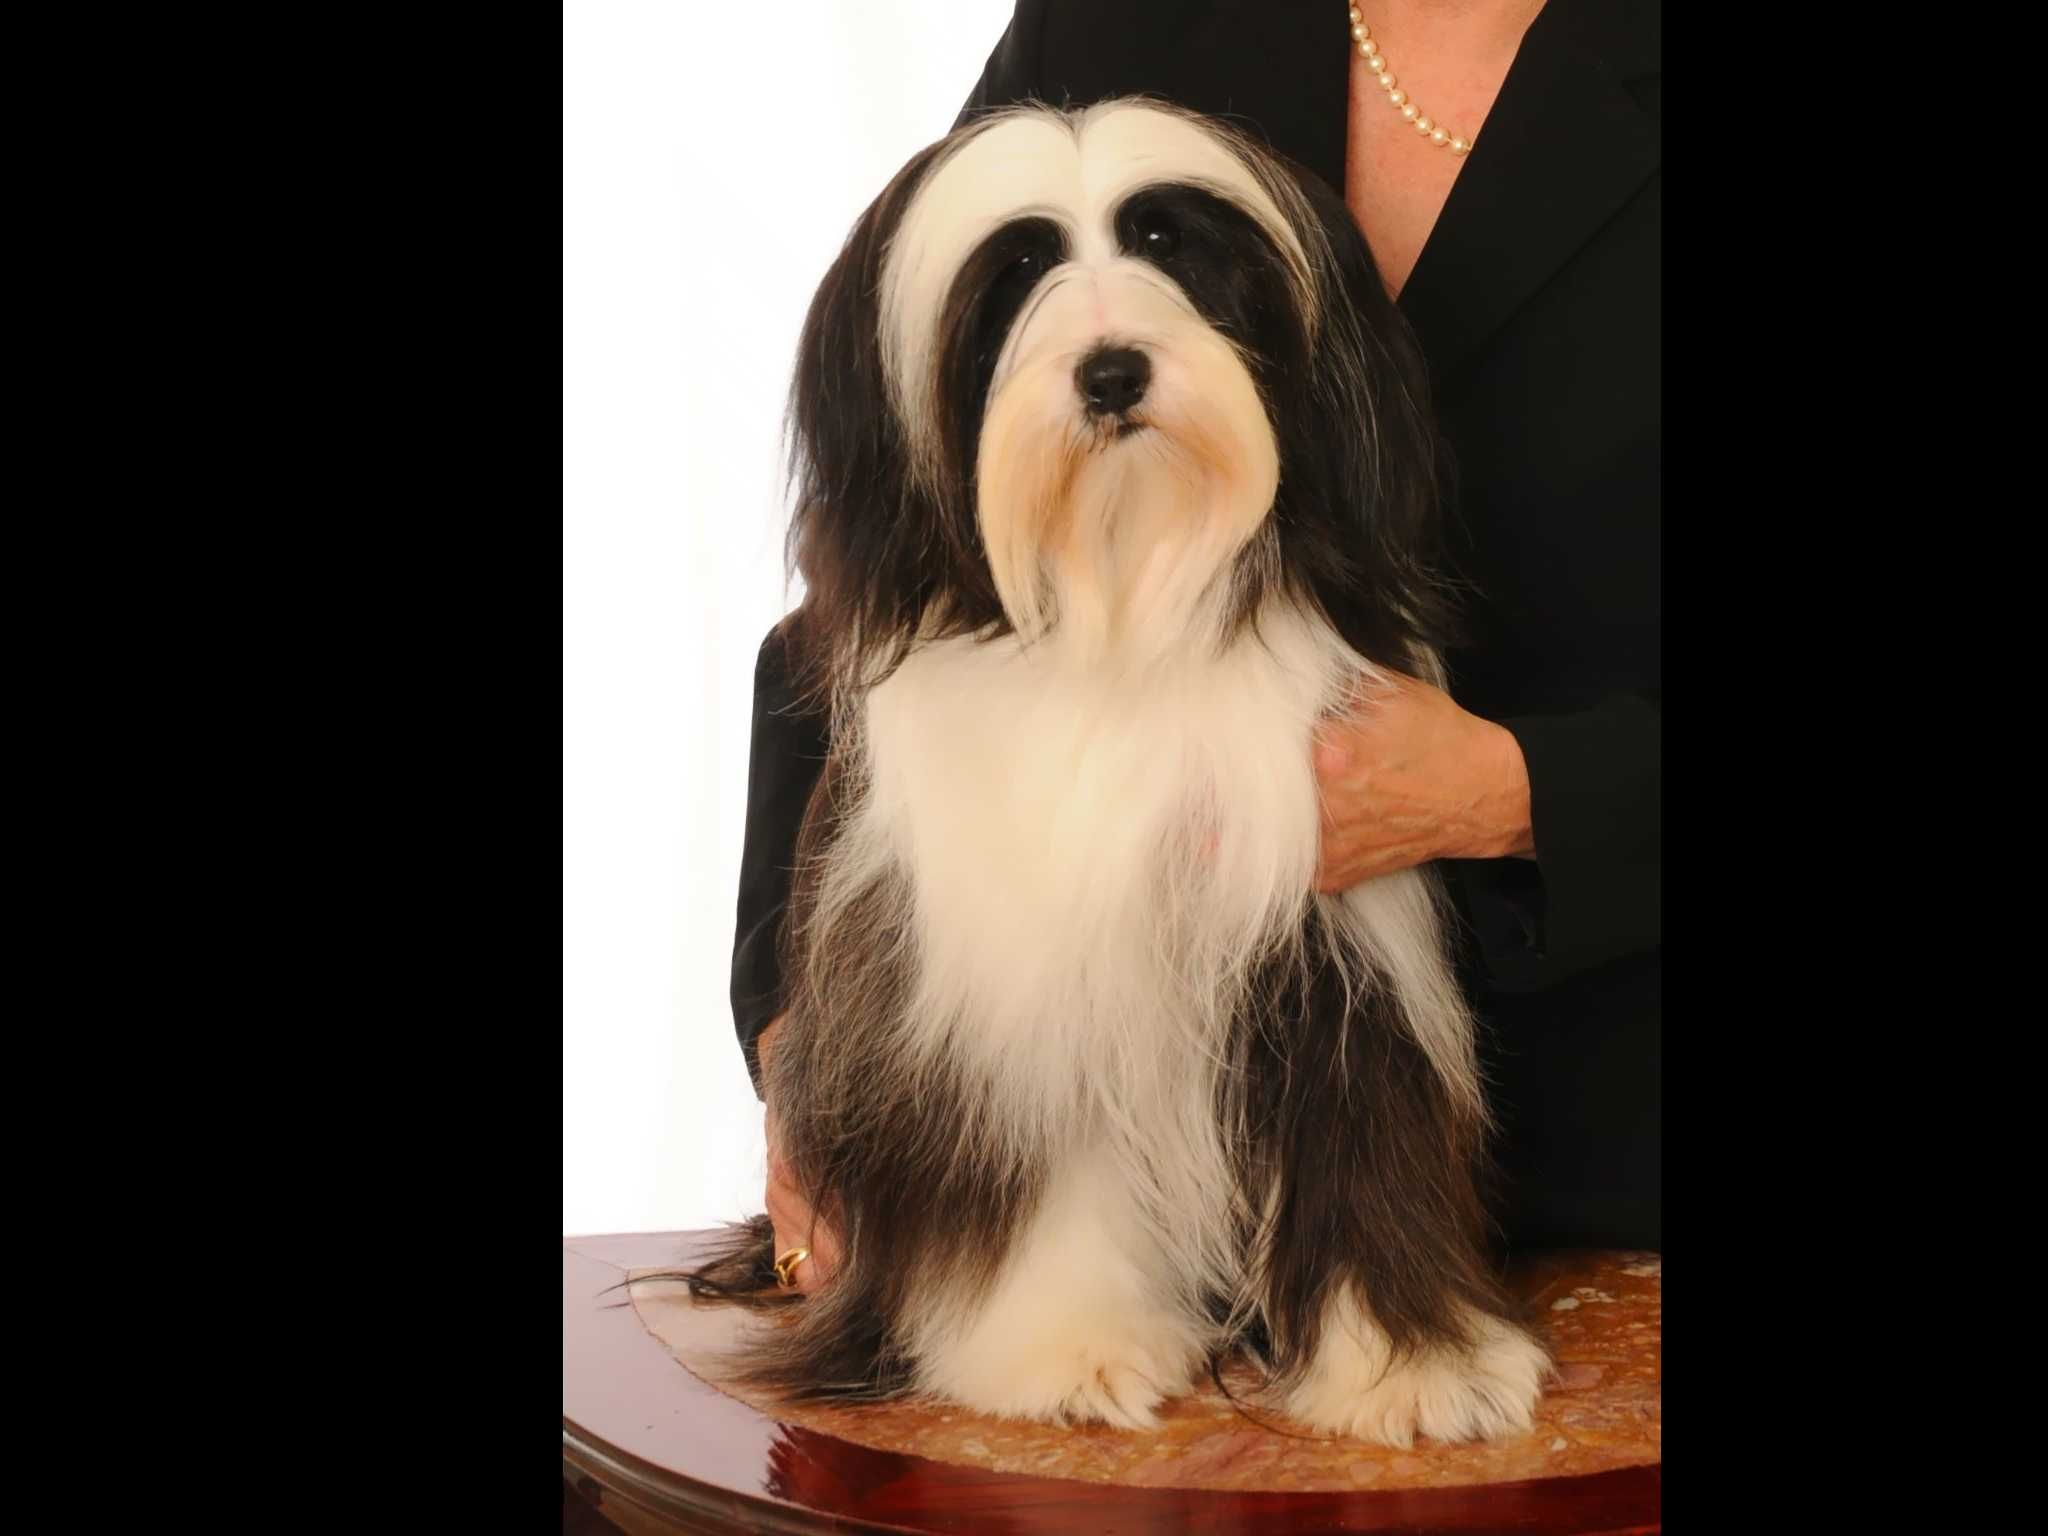 Lori Toth Is From Virginia And Breeds Tibetan Terriers Akc Proudly Supports Dedicated And Responsibl Havanese Puppies For Sale Tibetan Terrier Havanese Puppies